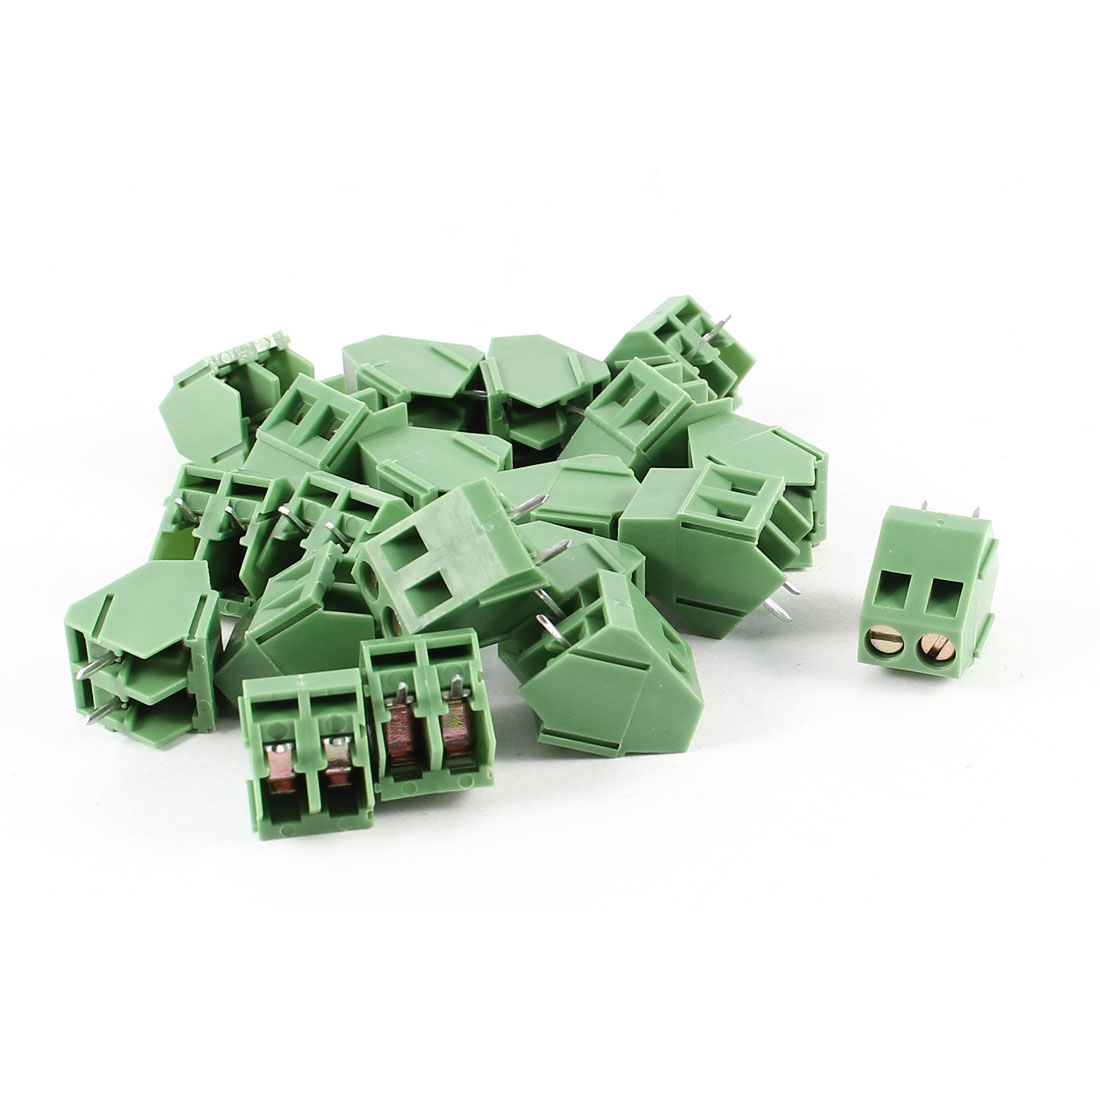 20 Pcs 2P 5mm Spacing PCB Screw Terminal Block Connector 300V 10A AWG22-10